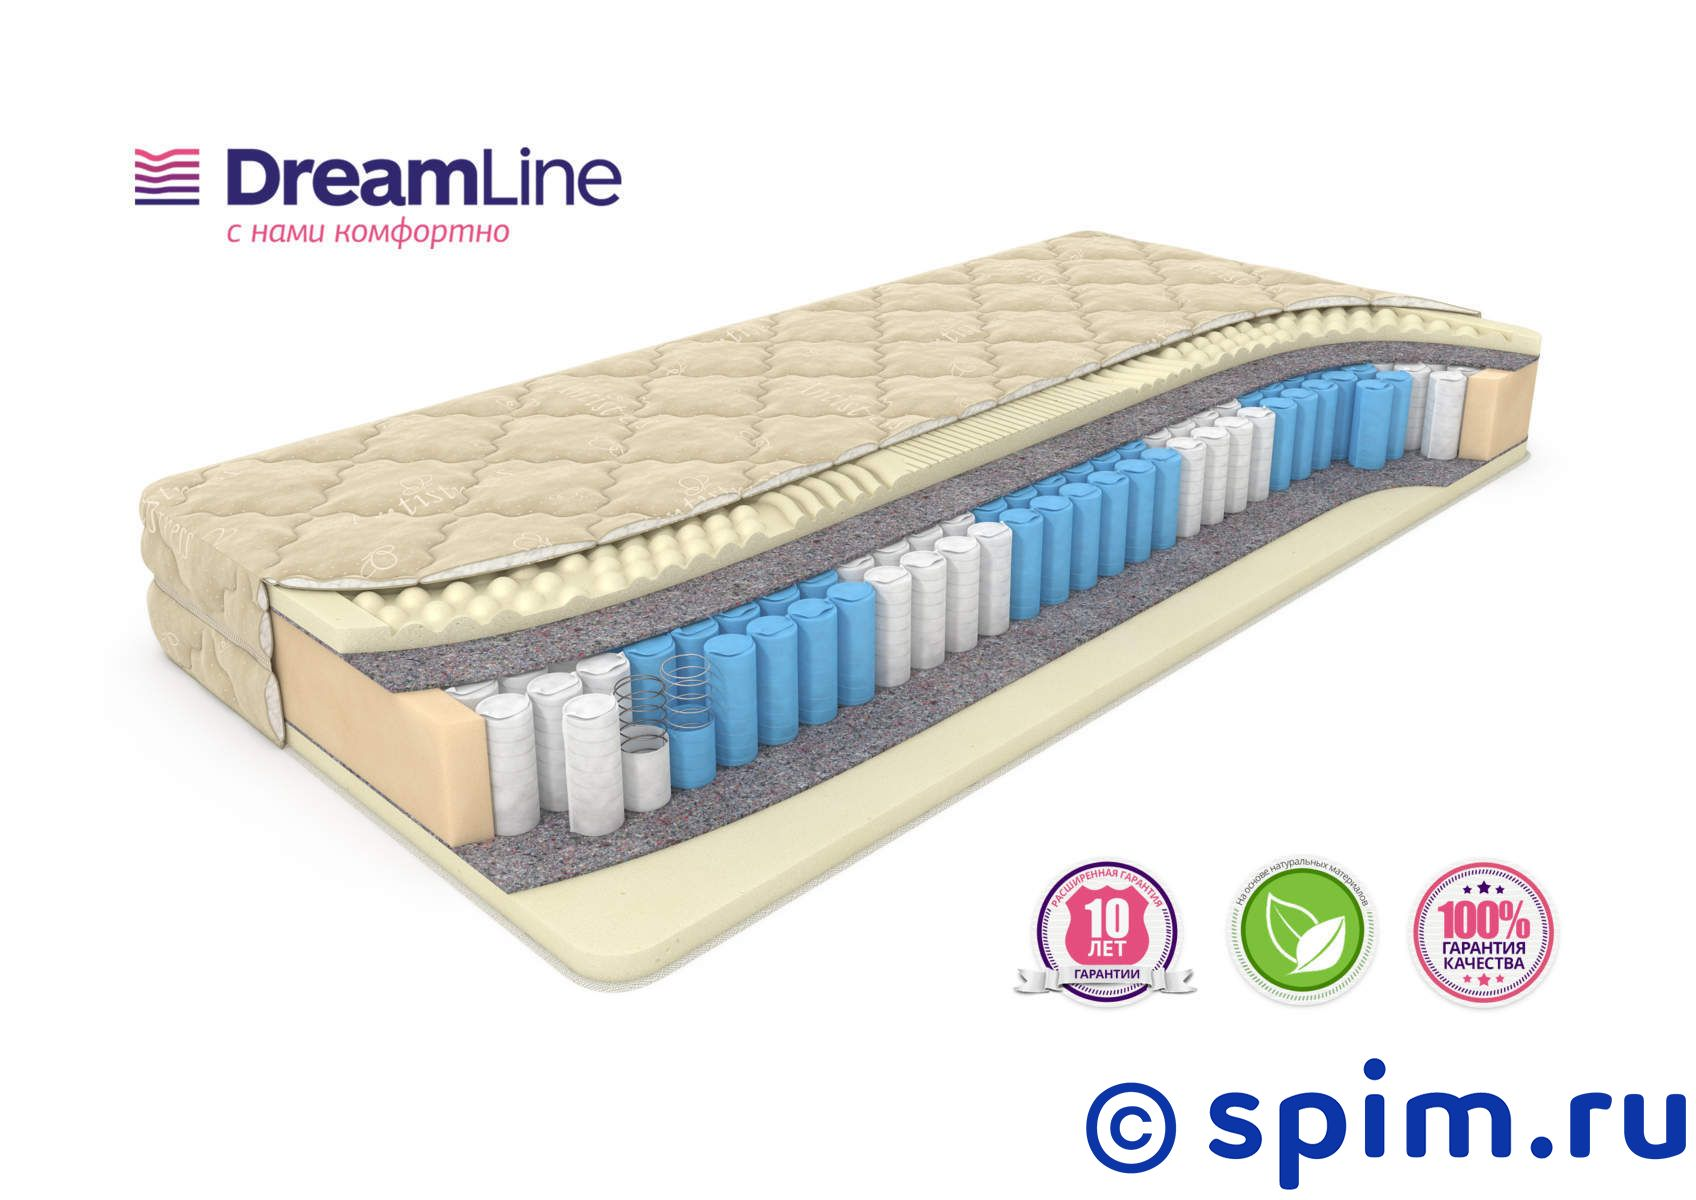 Матрас DreamLine Sleep Smart Zone 140х195 см матрас dreamline dreamroll contour mix 180х200